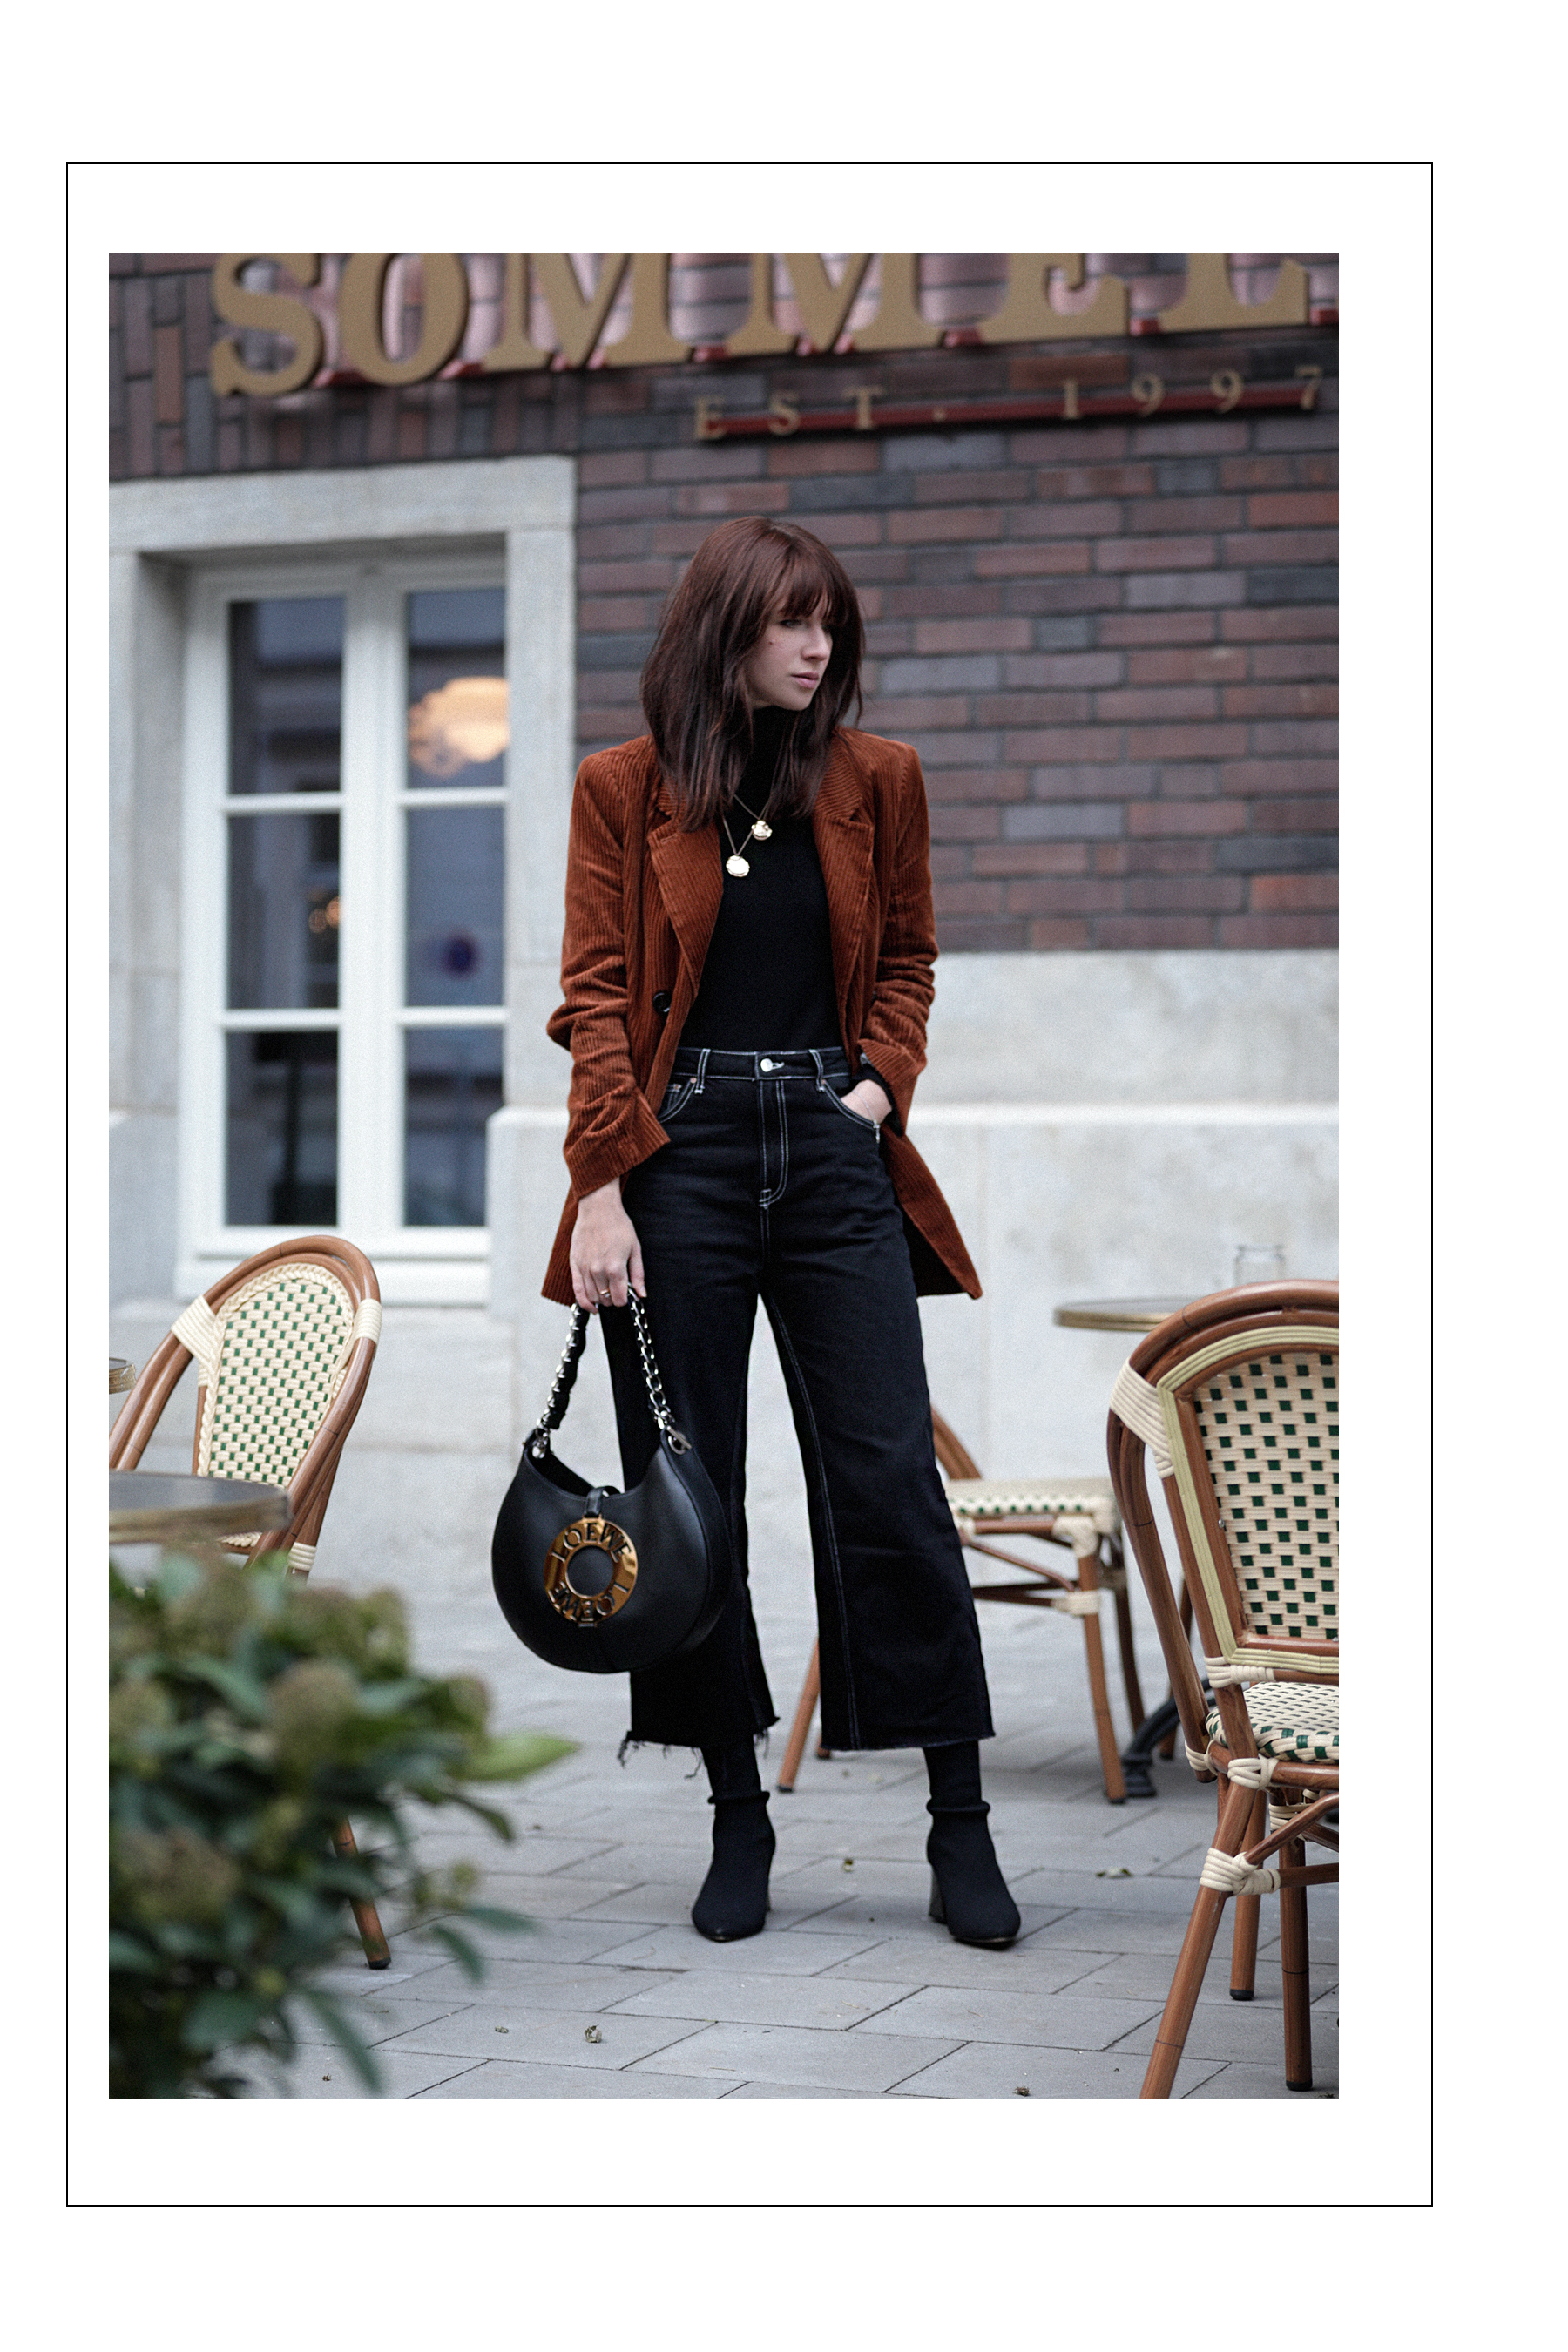 outfit brown cord cognac blazer jacket loewe joyce bag parisian cafe parisienne paris chic louis poulsen gucci sunglasses sock boots styling catsanddogsblog ricarda schernus modeblogger fashionblog düsseldorf max bechmann fotograf film 5